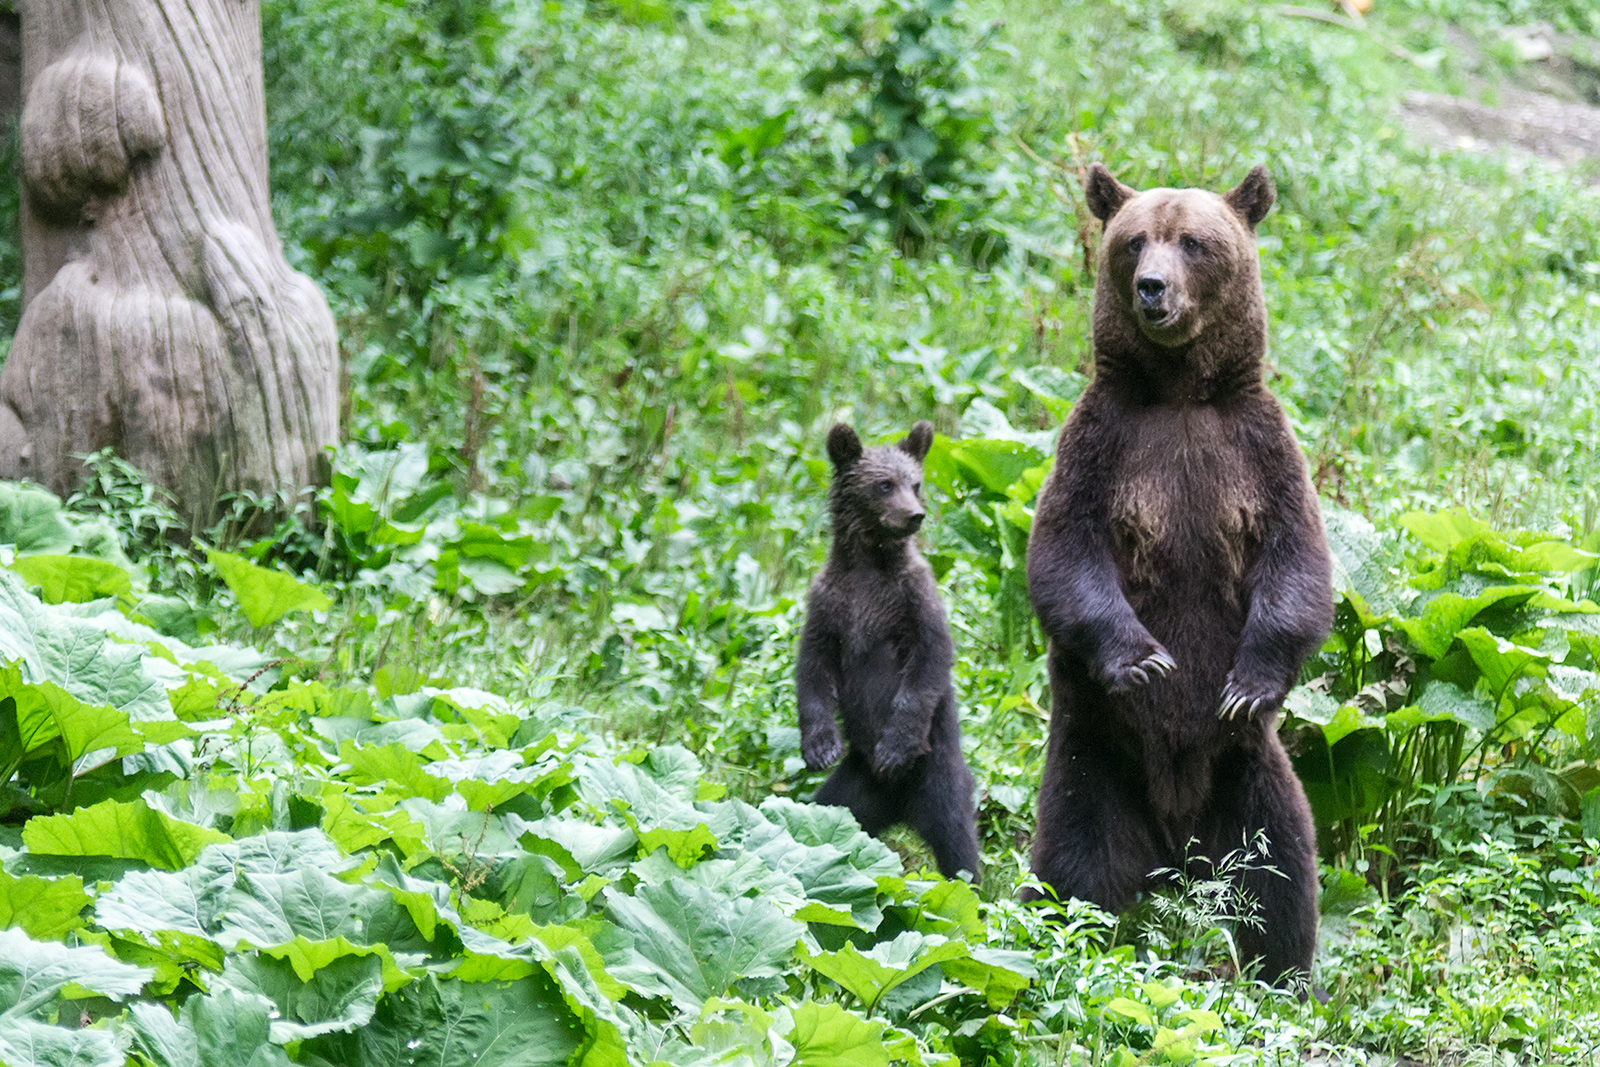 Even during feeding the bears were listening for any sound of possible danger